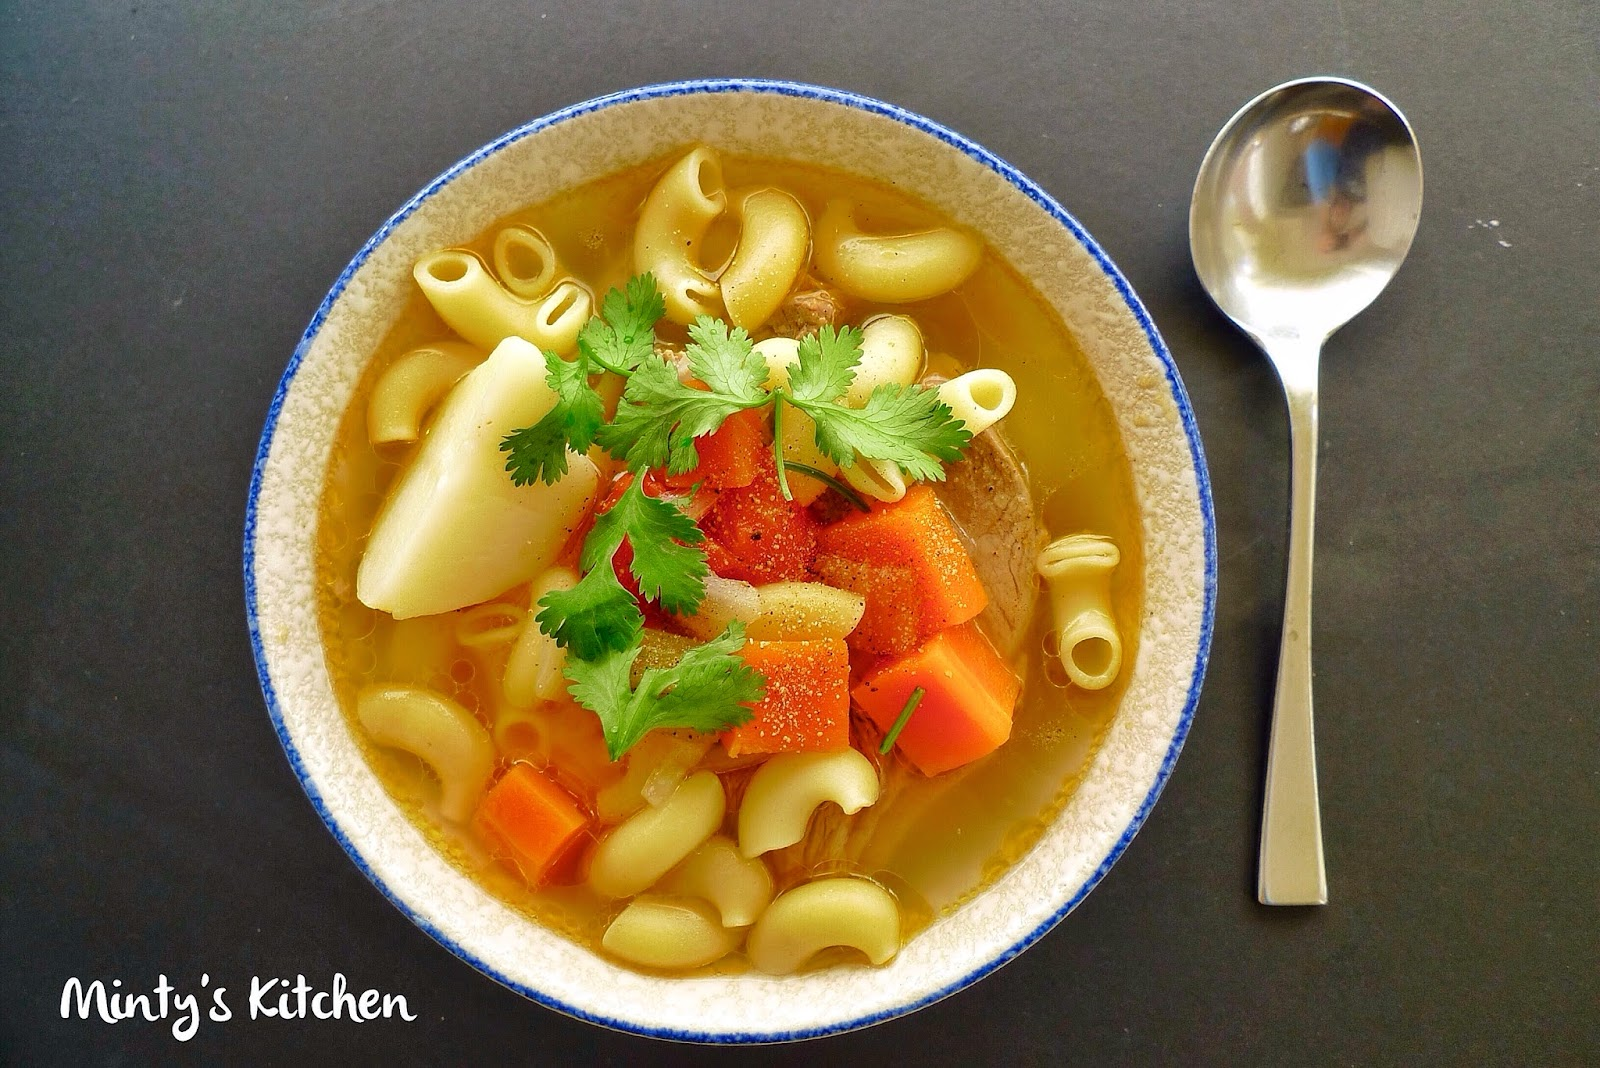 Macaroni in Lamb and Vegetables Soup